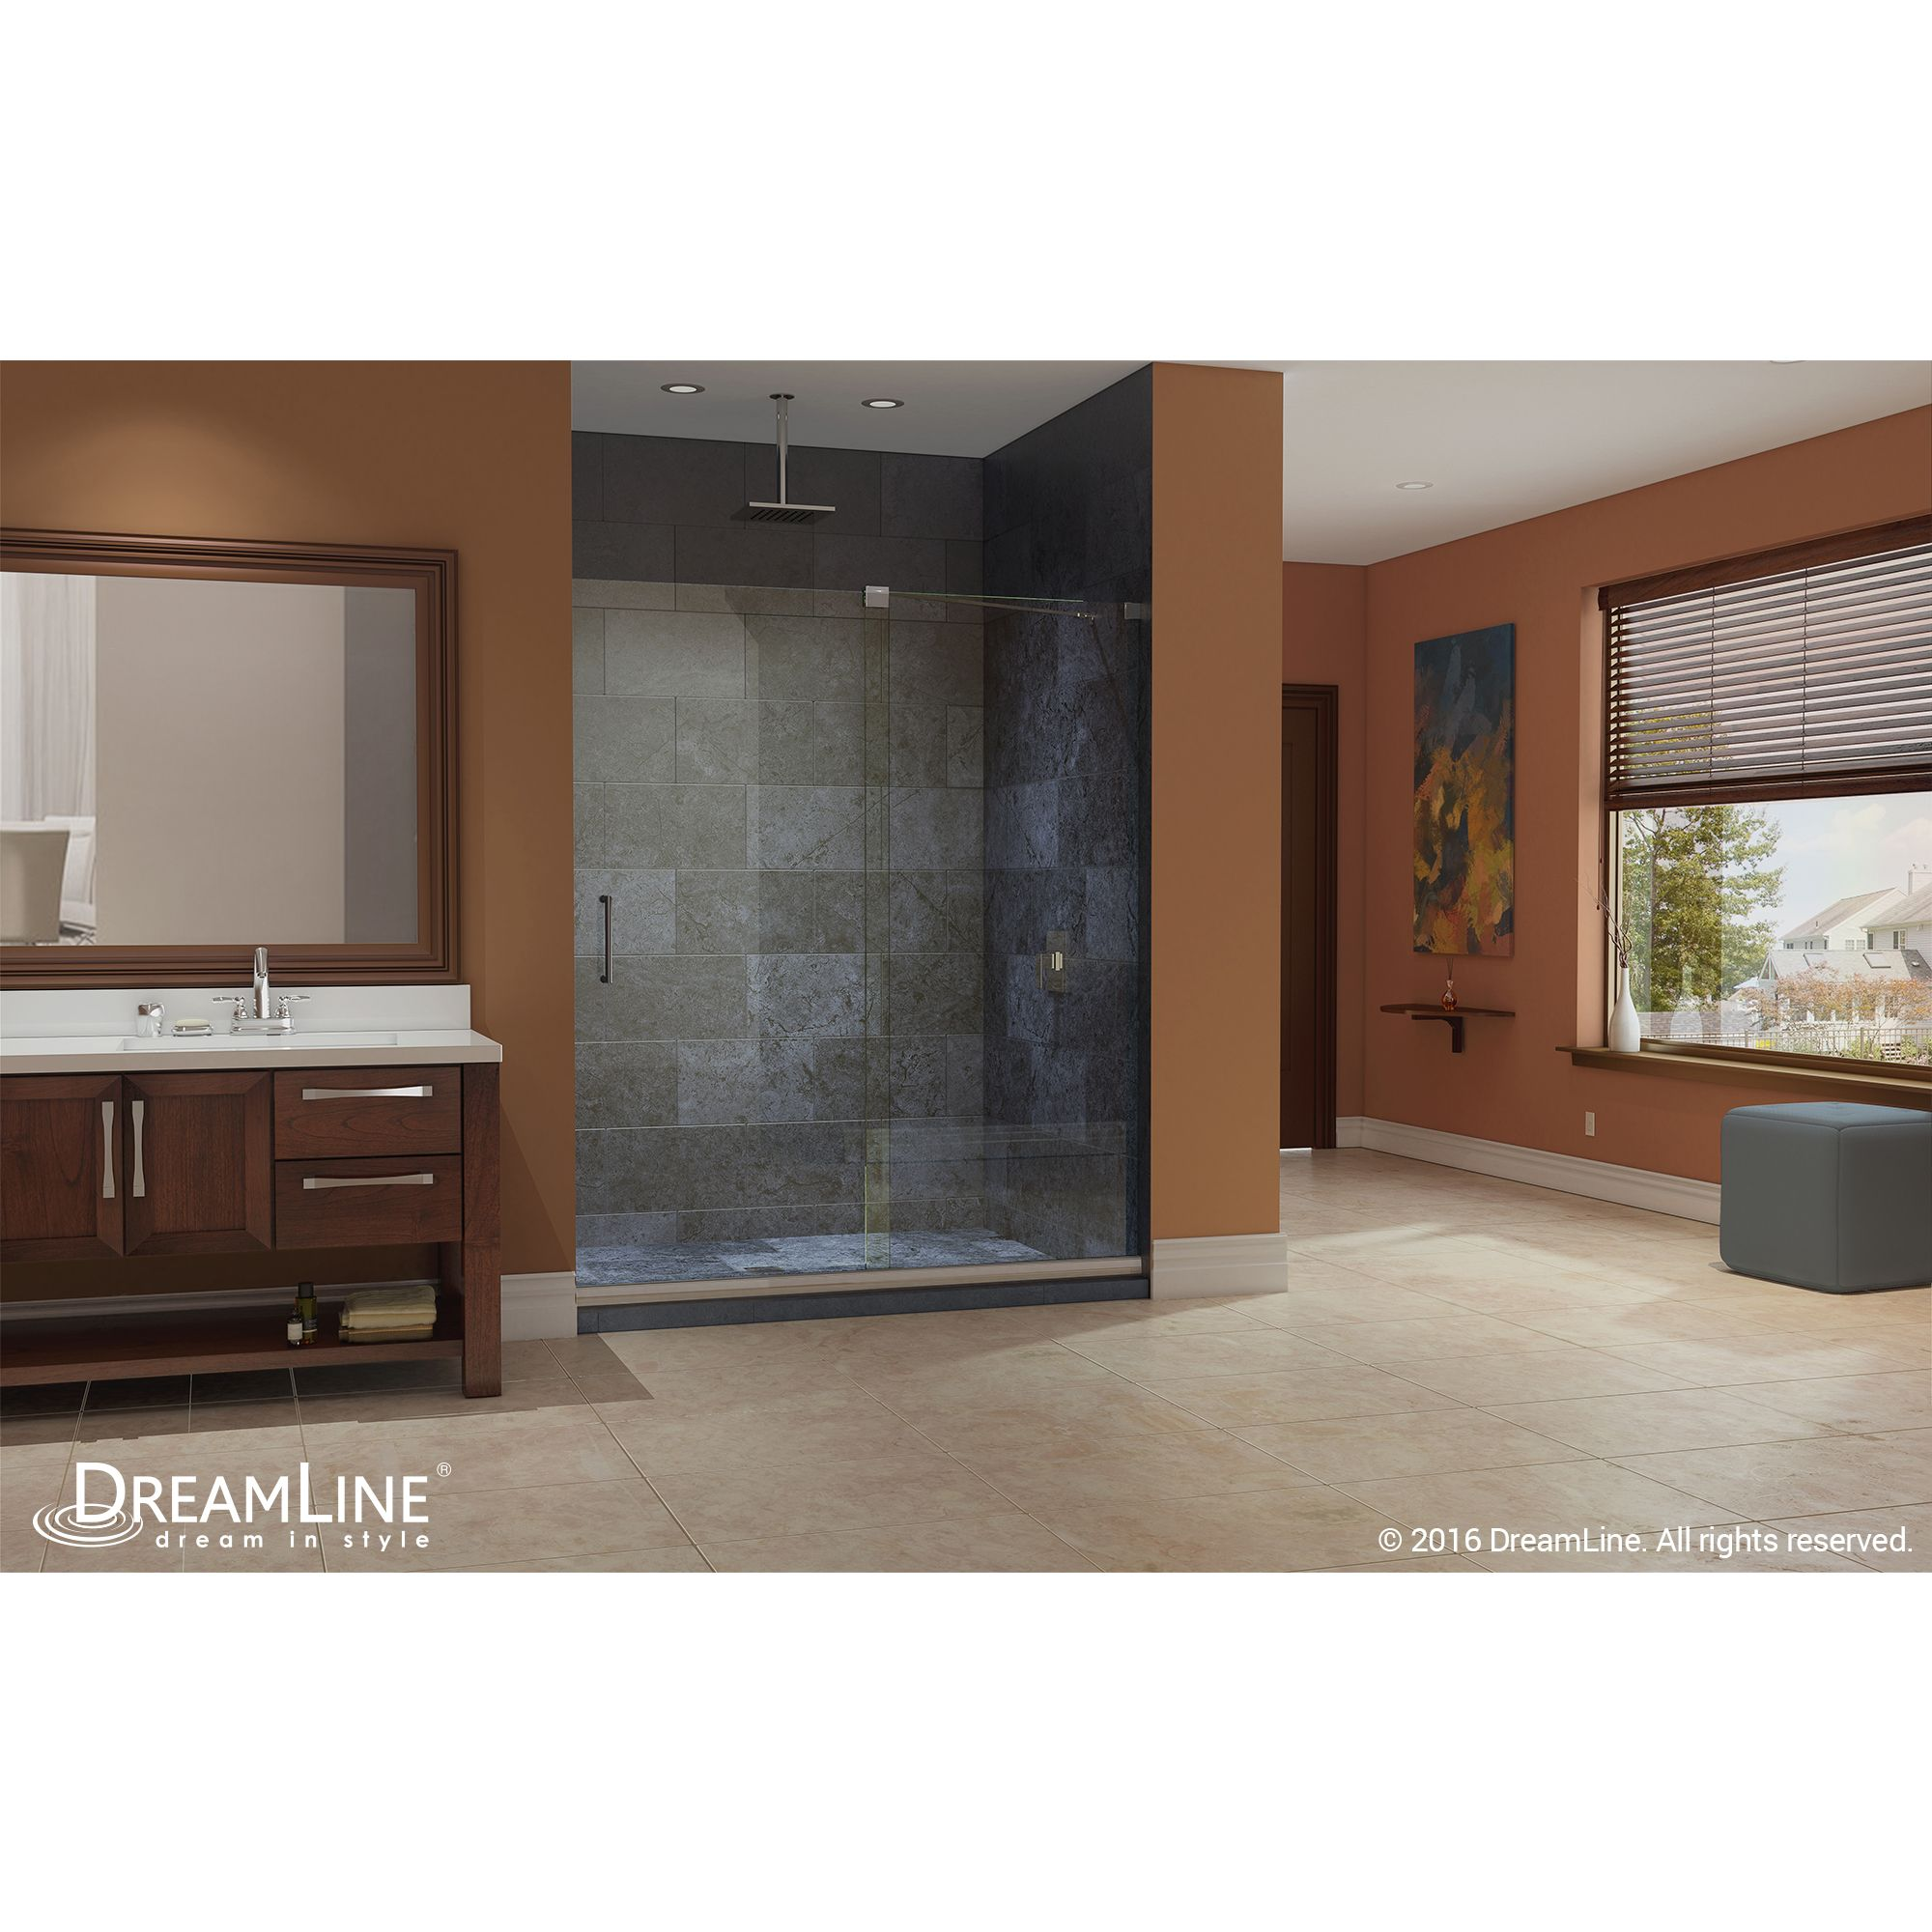 Mirage Shower Door From DreamLine, The Ultimate Shower Door!  #DreamLineShowerDoor #DreamLine #Autumn #Fall #Inspiration #FramelessShowerDoor #Brown #Harvest #FallColors #Bathroom #BathroomDecor #FallStyle